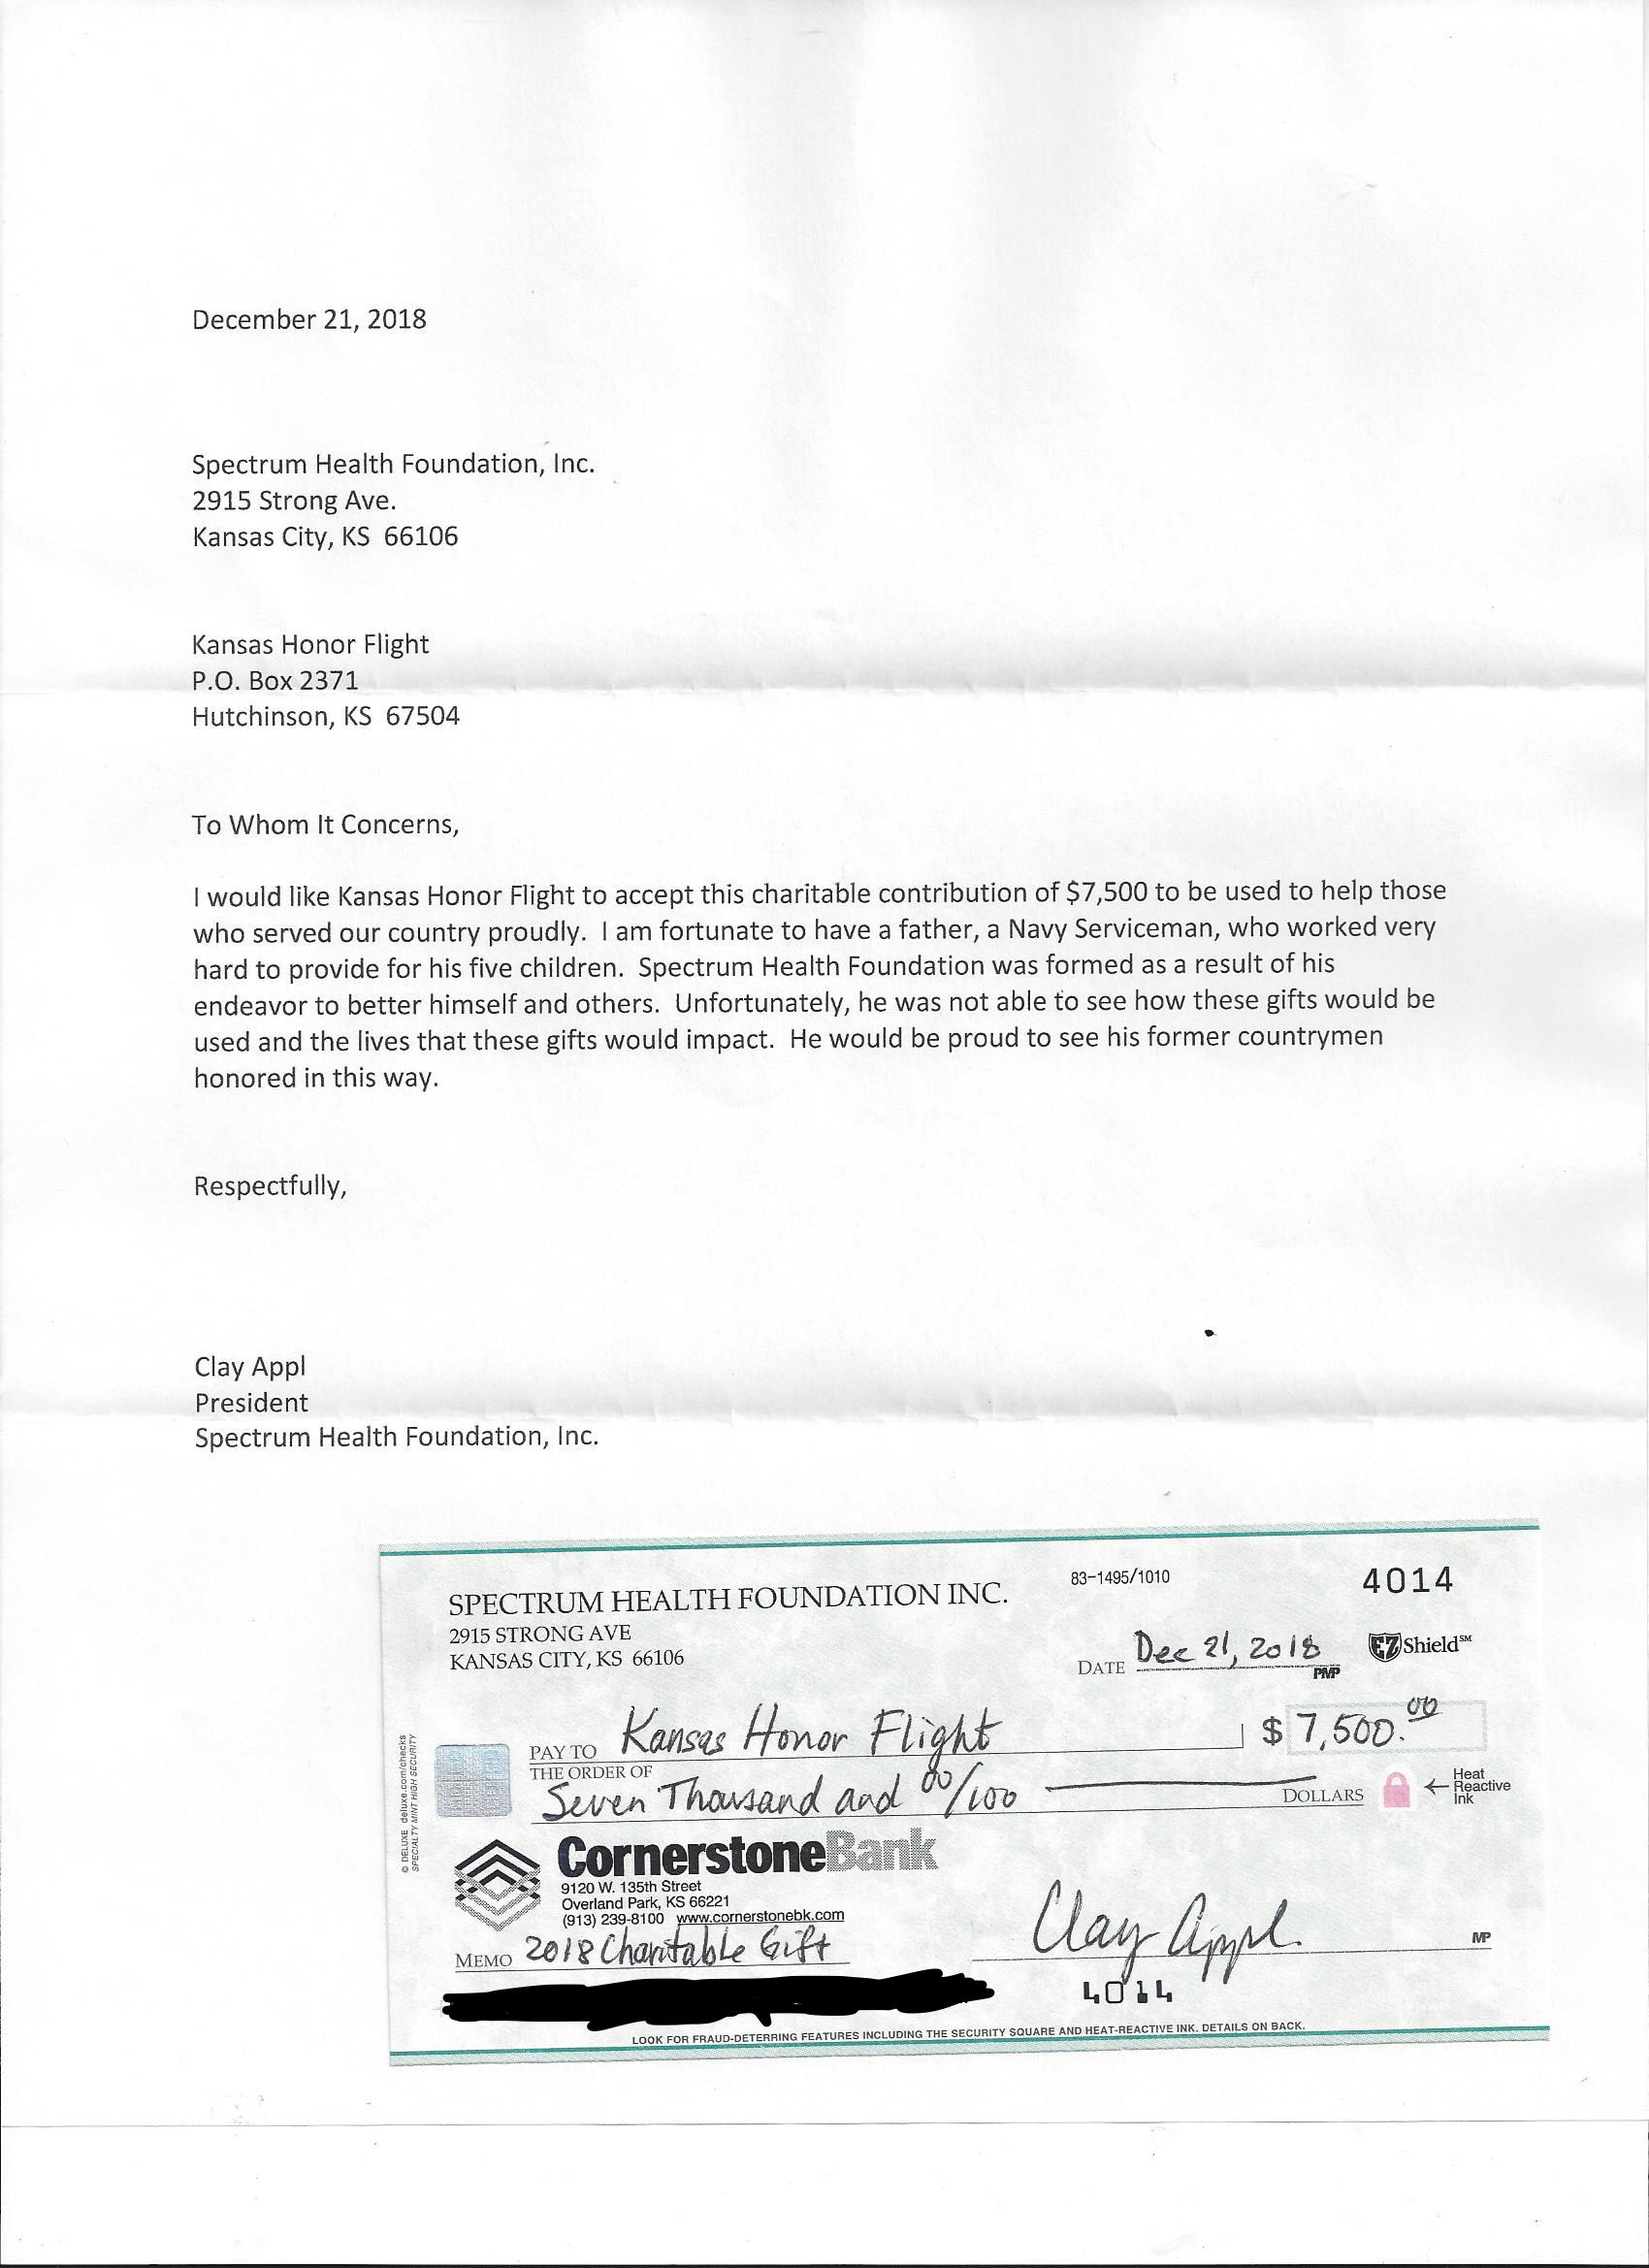 Letter from Clay and Sheryl Appl to Kansas Honor Flight